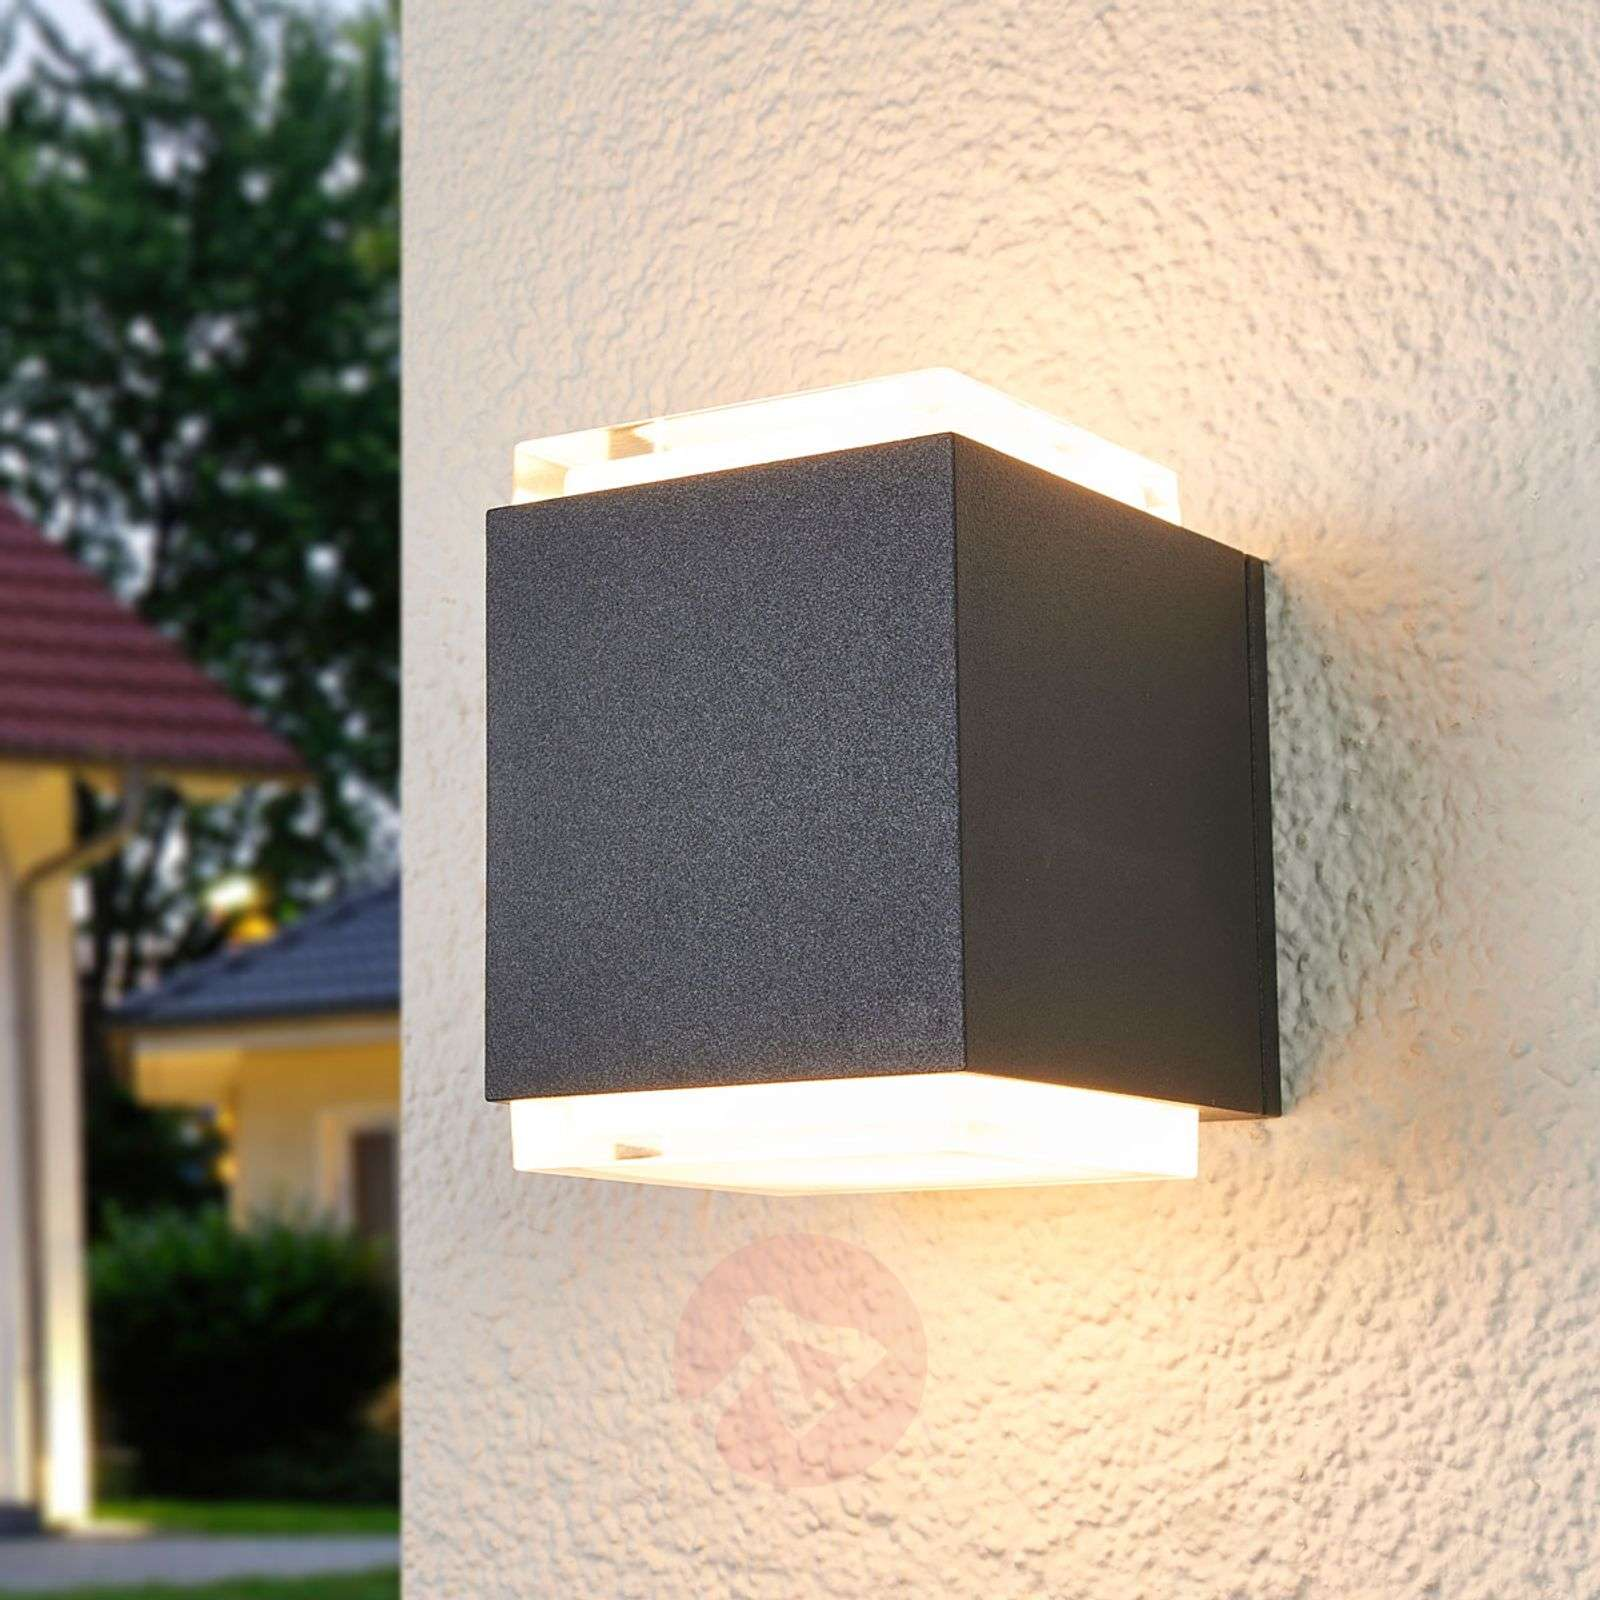 Bega LED outdoor wall lamp Ben-1566019-01